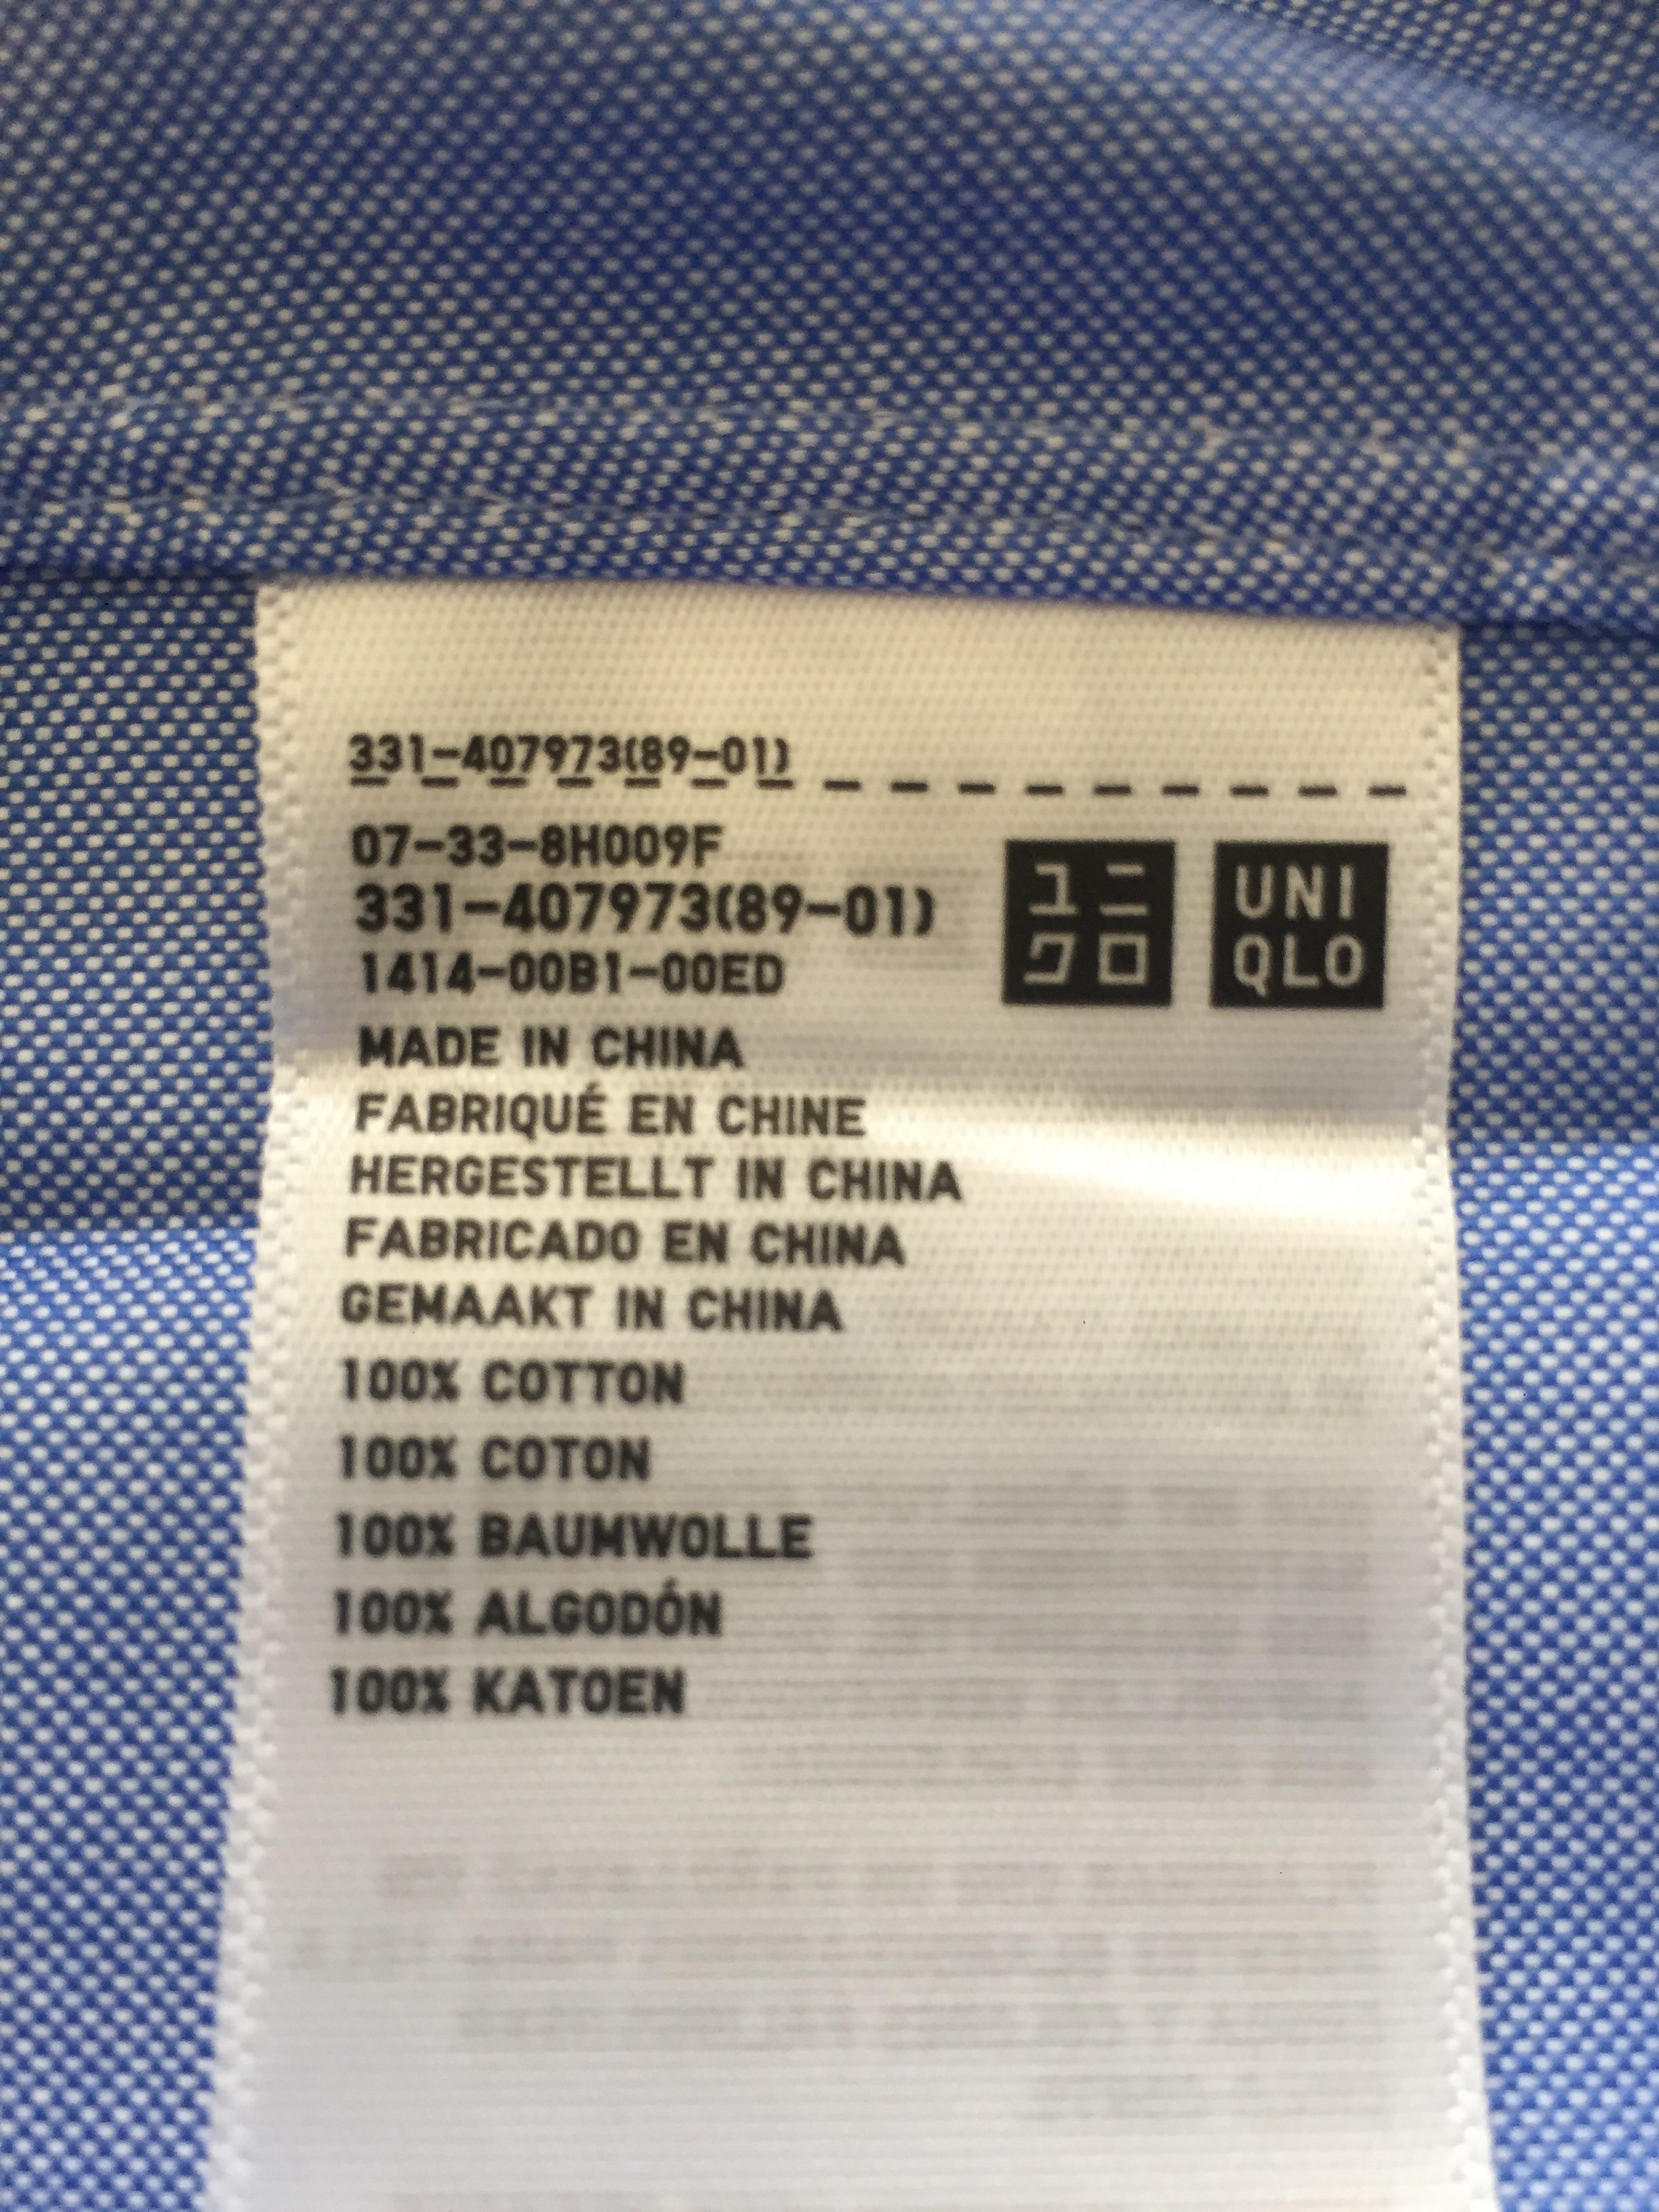 Uniqlo slim fit shirt made in China